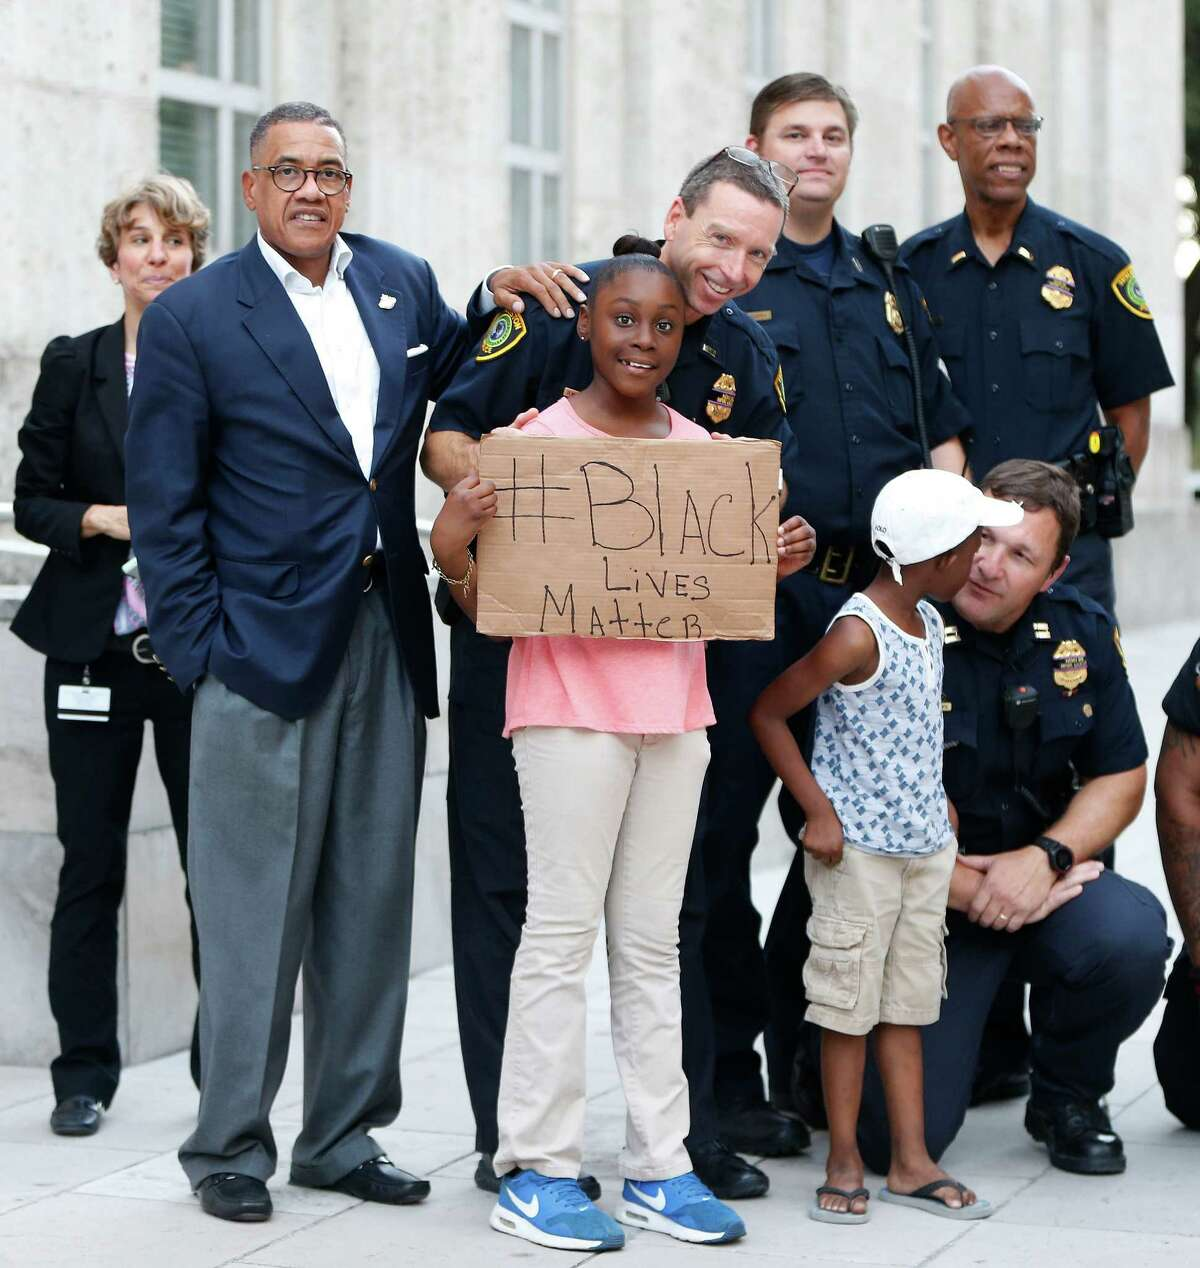 Houston police take photos with protesters during the rally that began at Discovery Green and ended at City Hall on Friday.